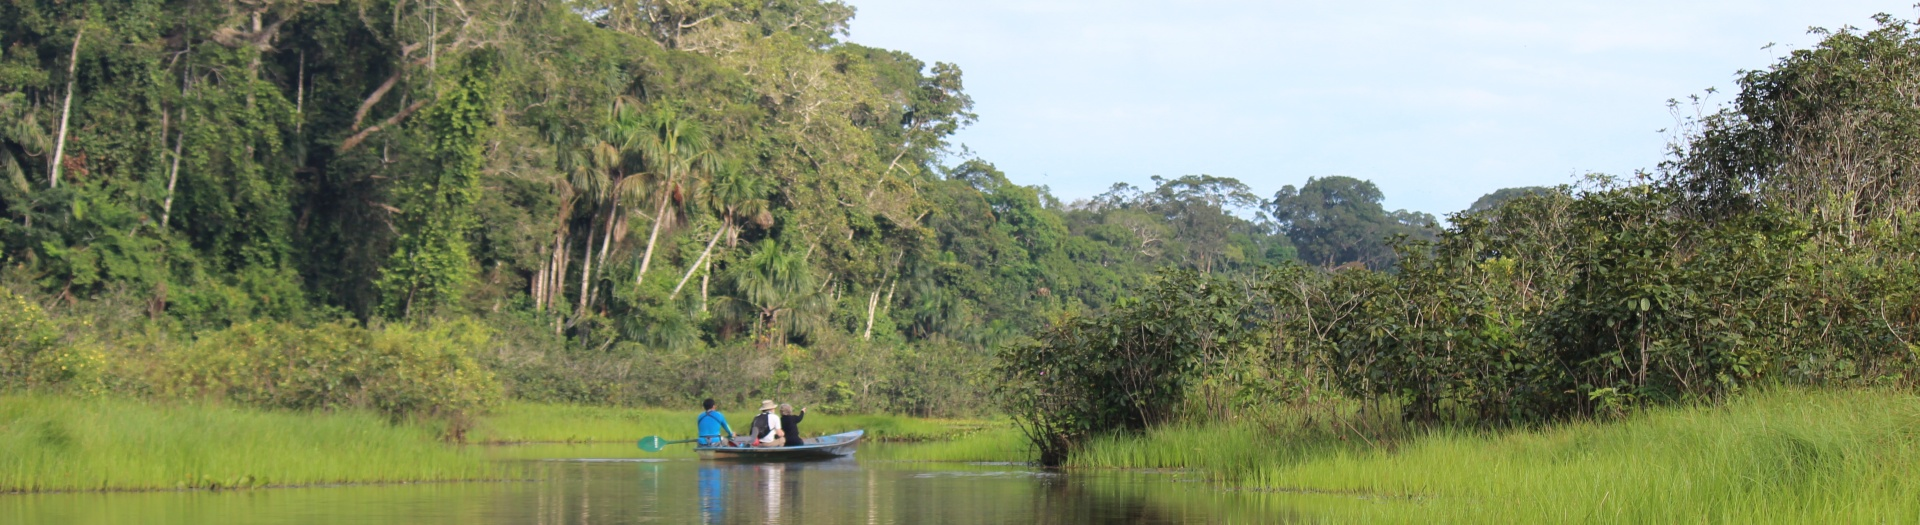 Immersion totale en Amazonie